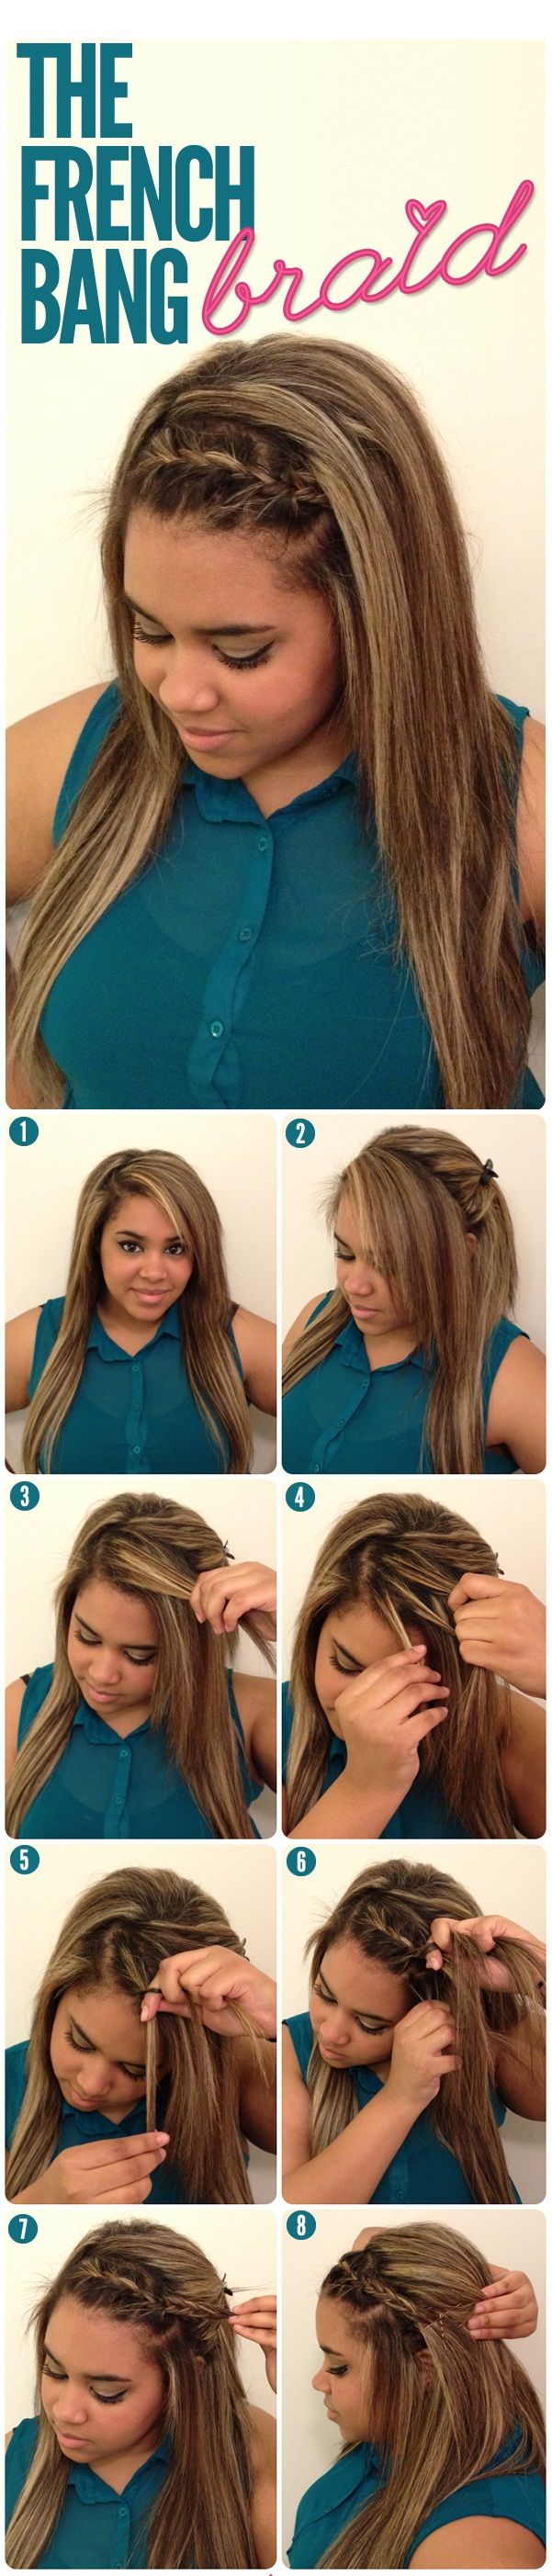 THE FRENCH BANG BRAID-Top 15 Easy-To-Make Braids Tutorials